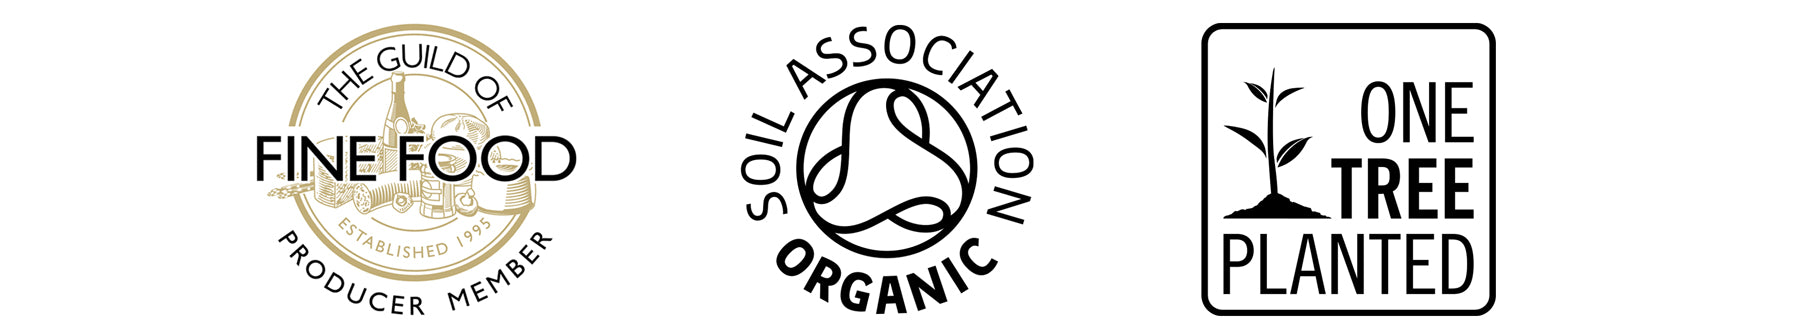 NORLO - Guild of fine food, one tree planted, soil association organic